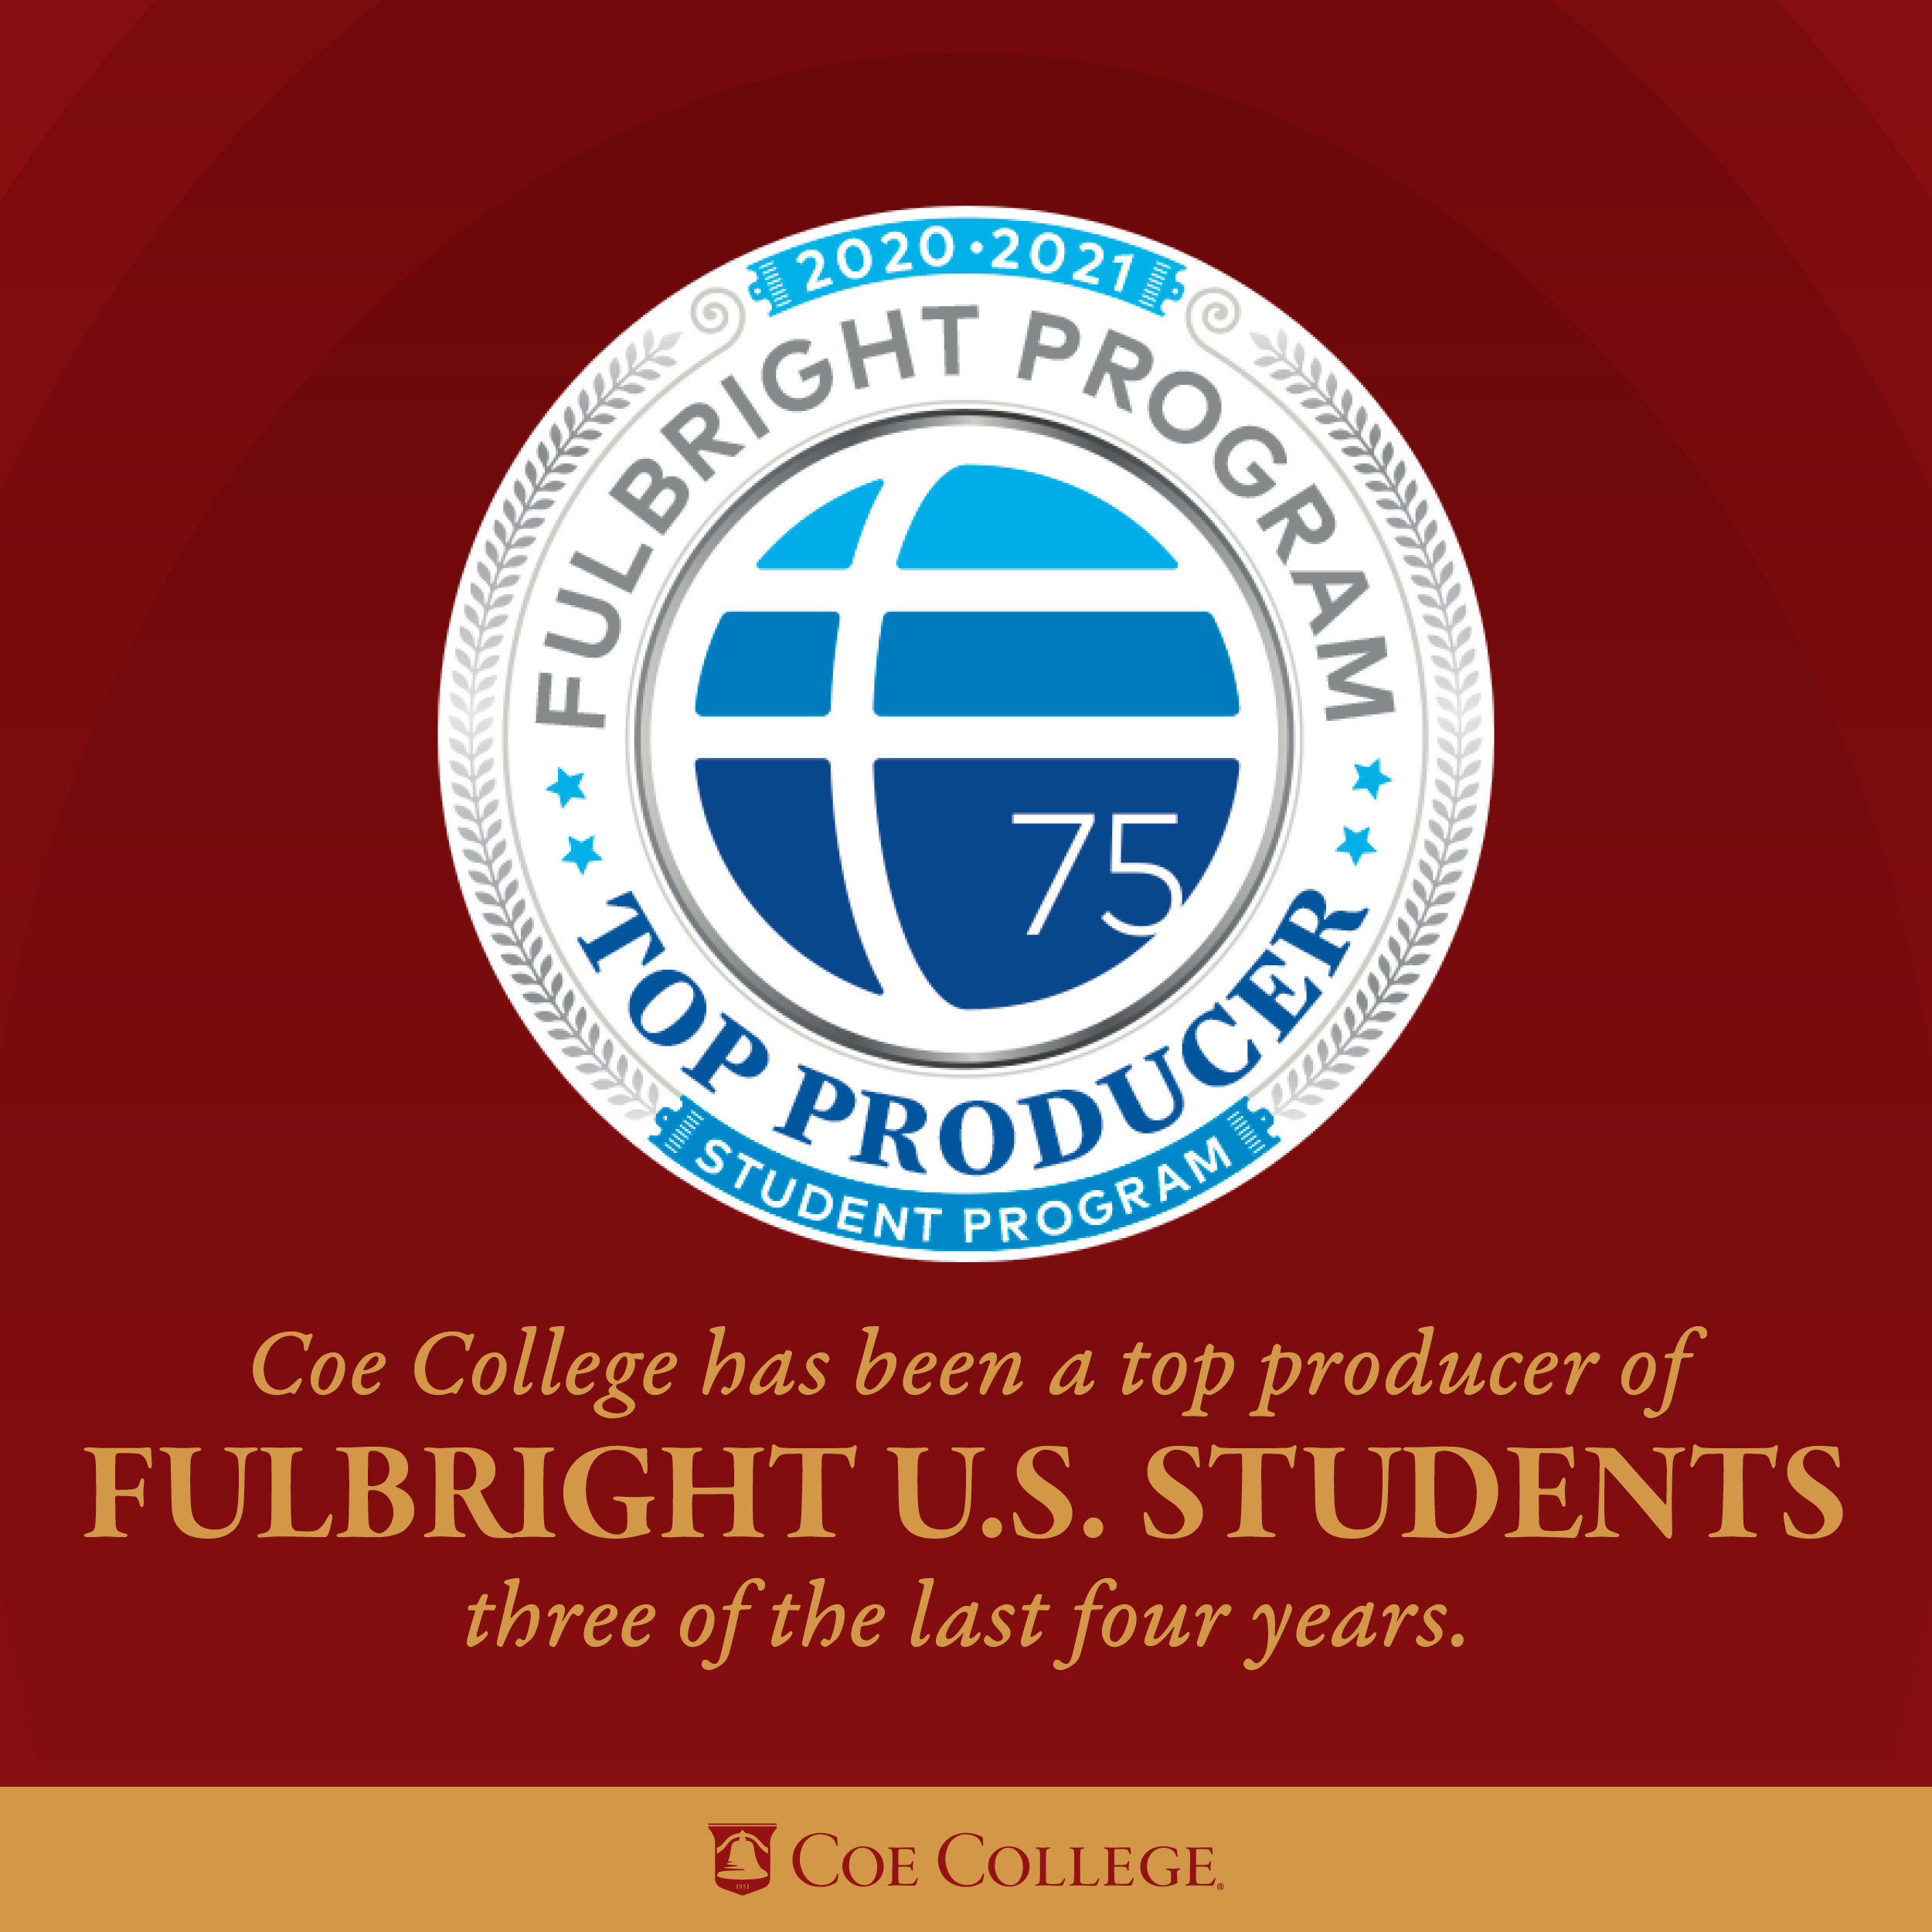 Coe College again named a top producer of Fulbright U.S. students